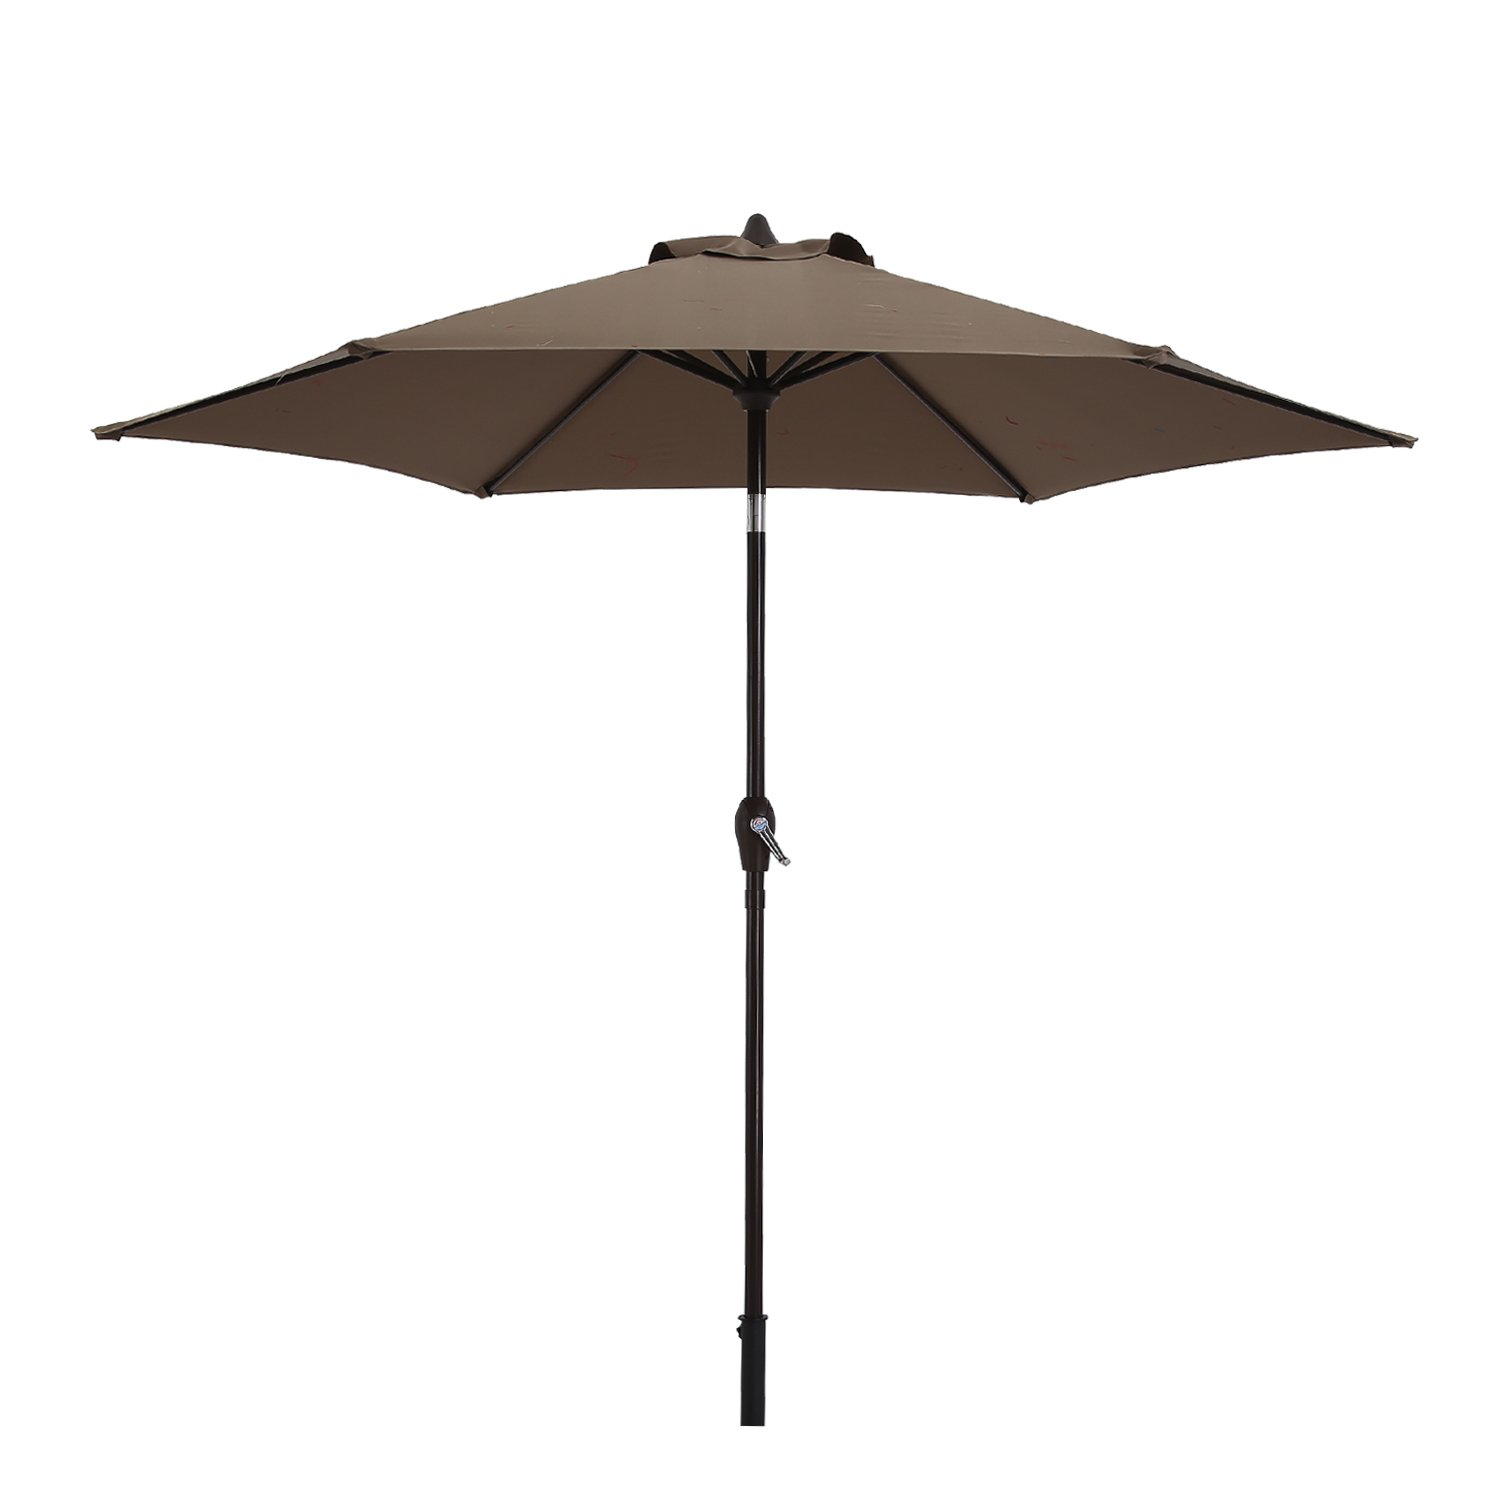 Paulla 9 Ft Patio Umbrella Outdoor Table Umbrella with Crank, 6 Ribs (Taupe)